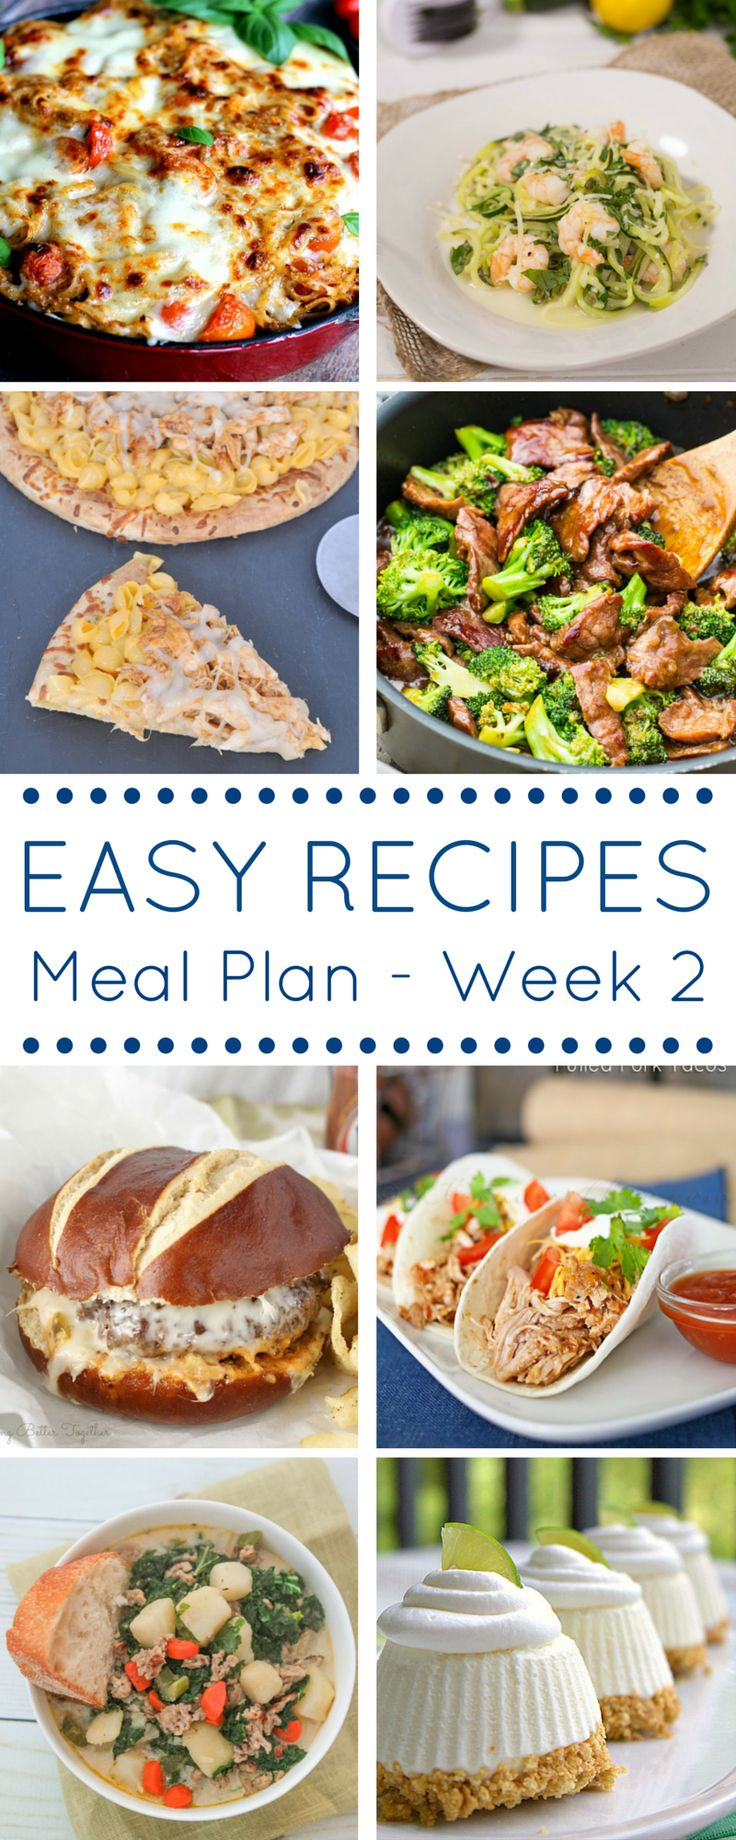 THE EASY DINNER RECIPES MEAL PLAN – WEEK 2 - With all the hustle that comes at dinner time, these easy dinner recipes are tried, tested & perfected by all these phenomenal bloggers for you. on kleinworthco.com